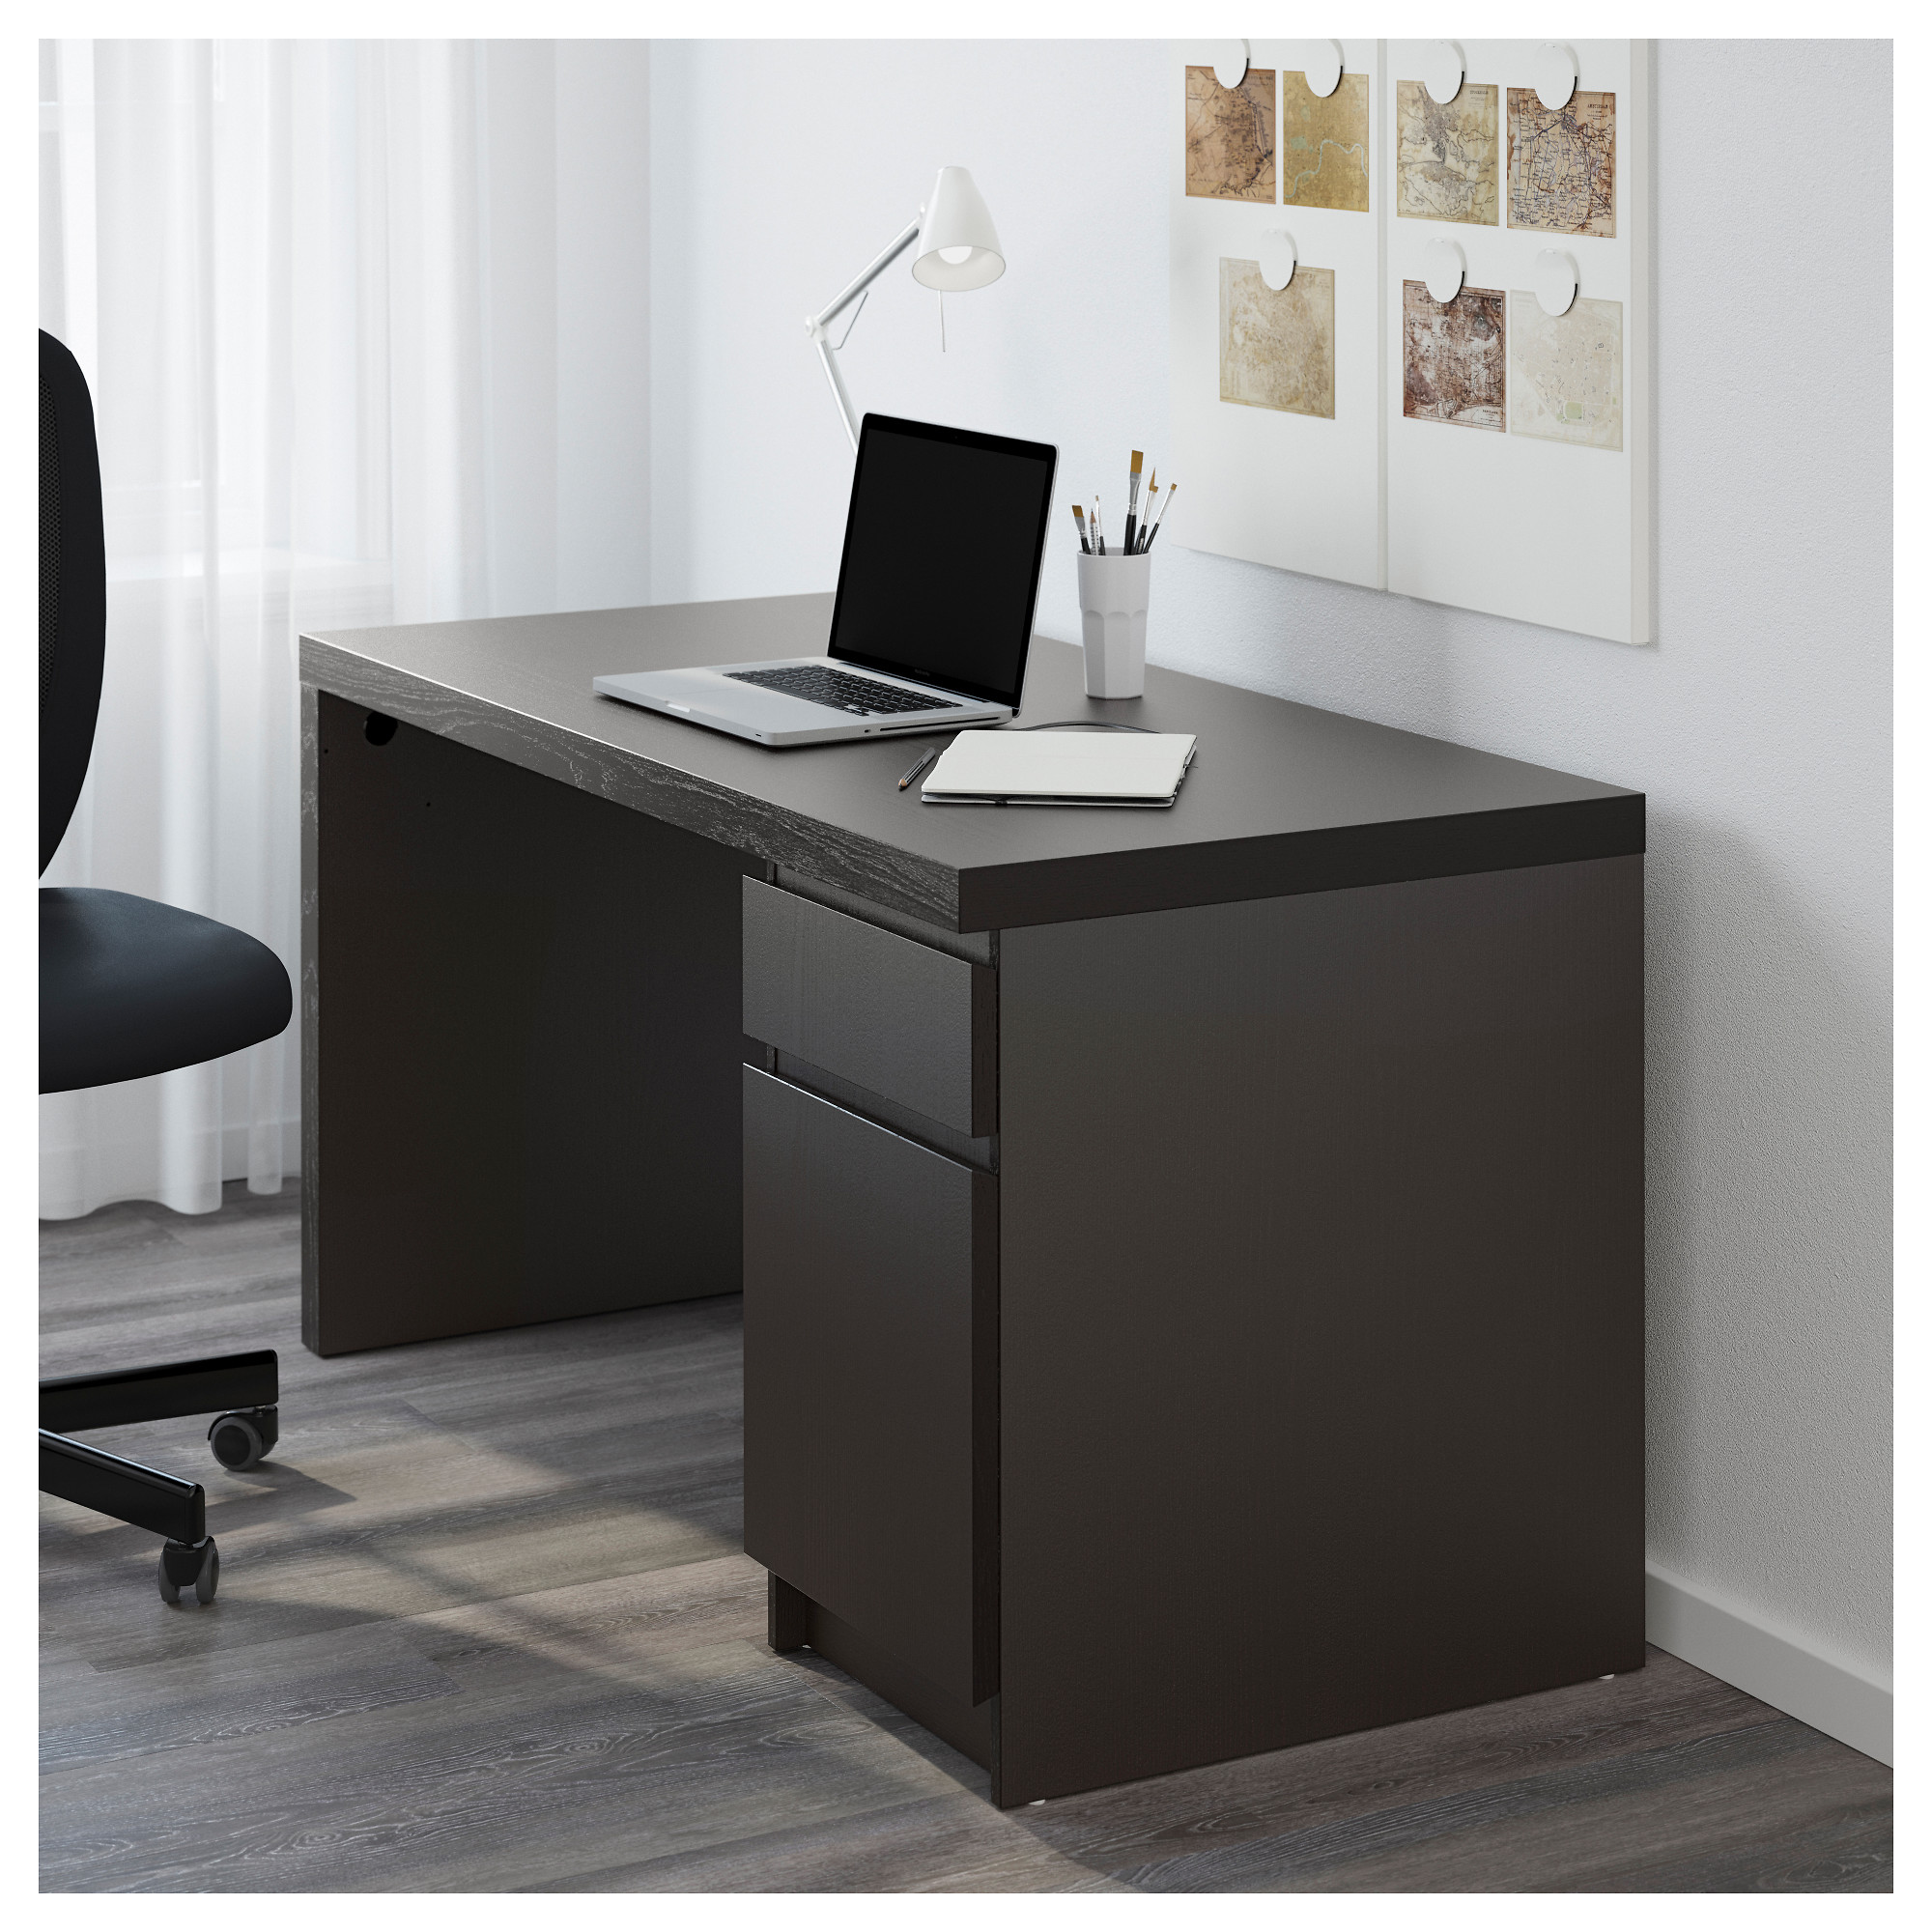 MALM Desk   Black Brown   IKEA Part 64